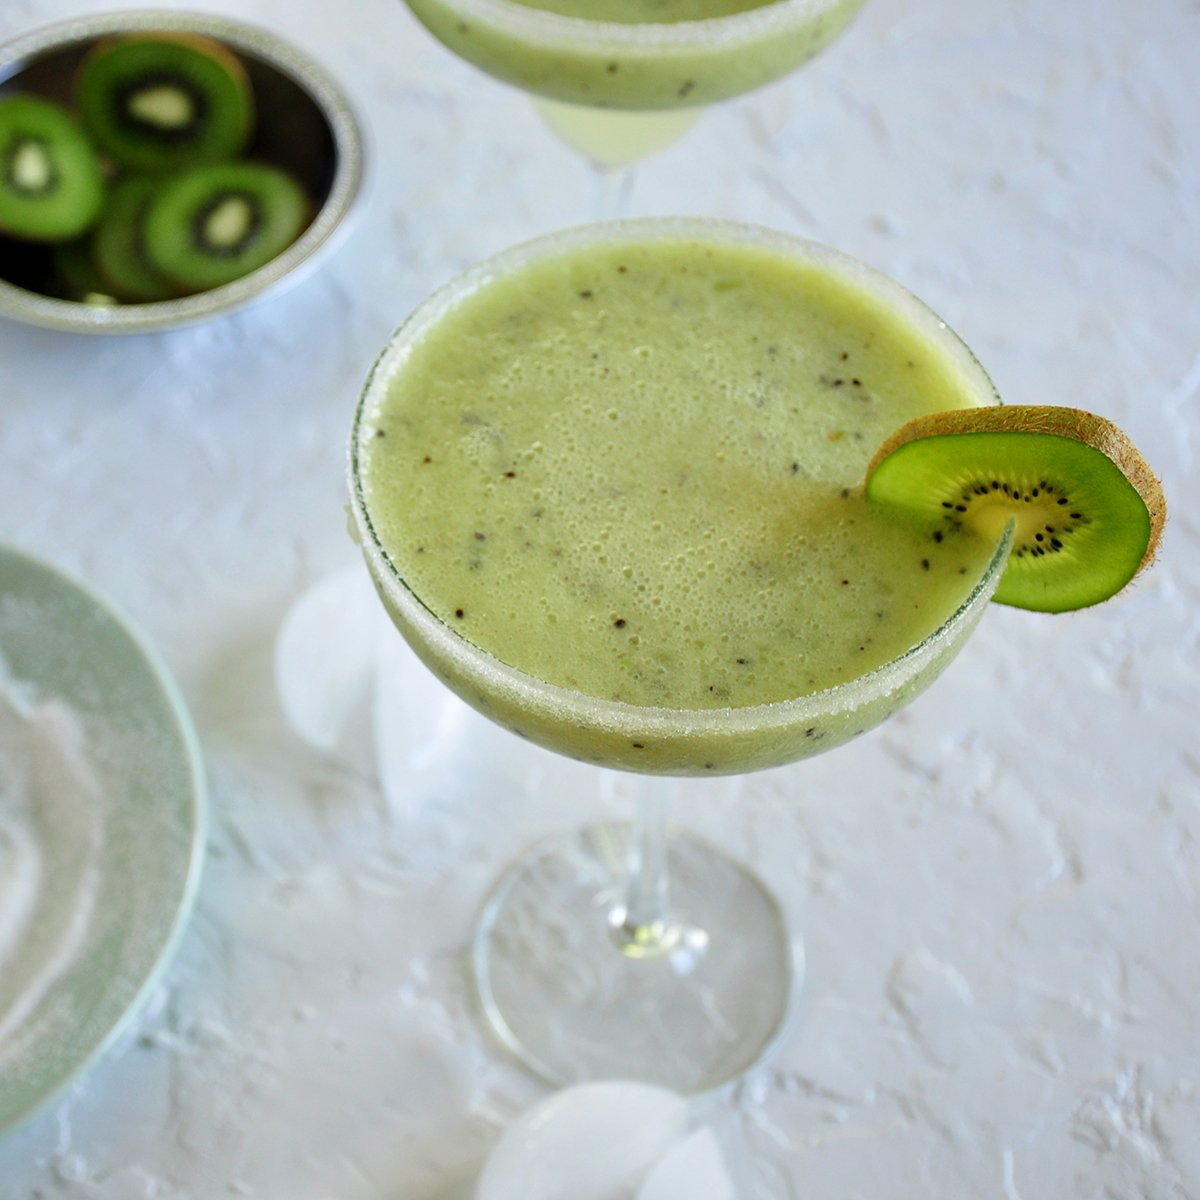 Frozen Kiwi Coconut Margarita with a kiwi slice as garnish. There is some ice laying on the board below along with a dish of sliced kiwi and a plate of sugar that was used for rimming the glass